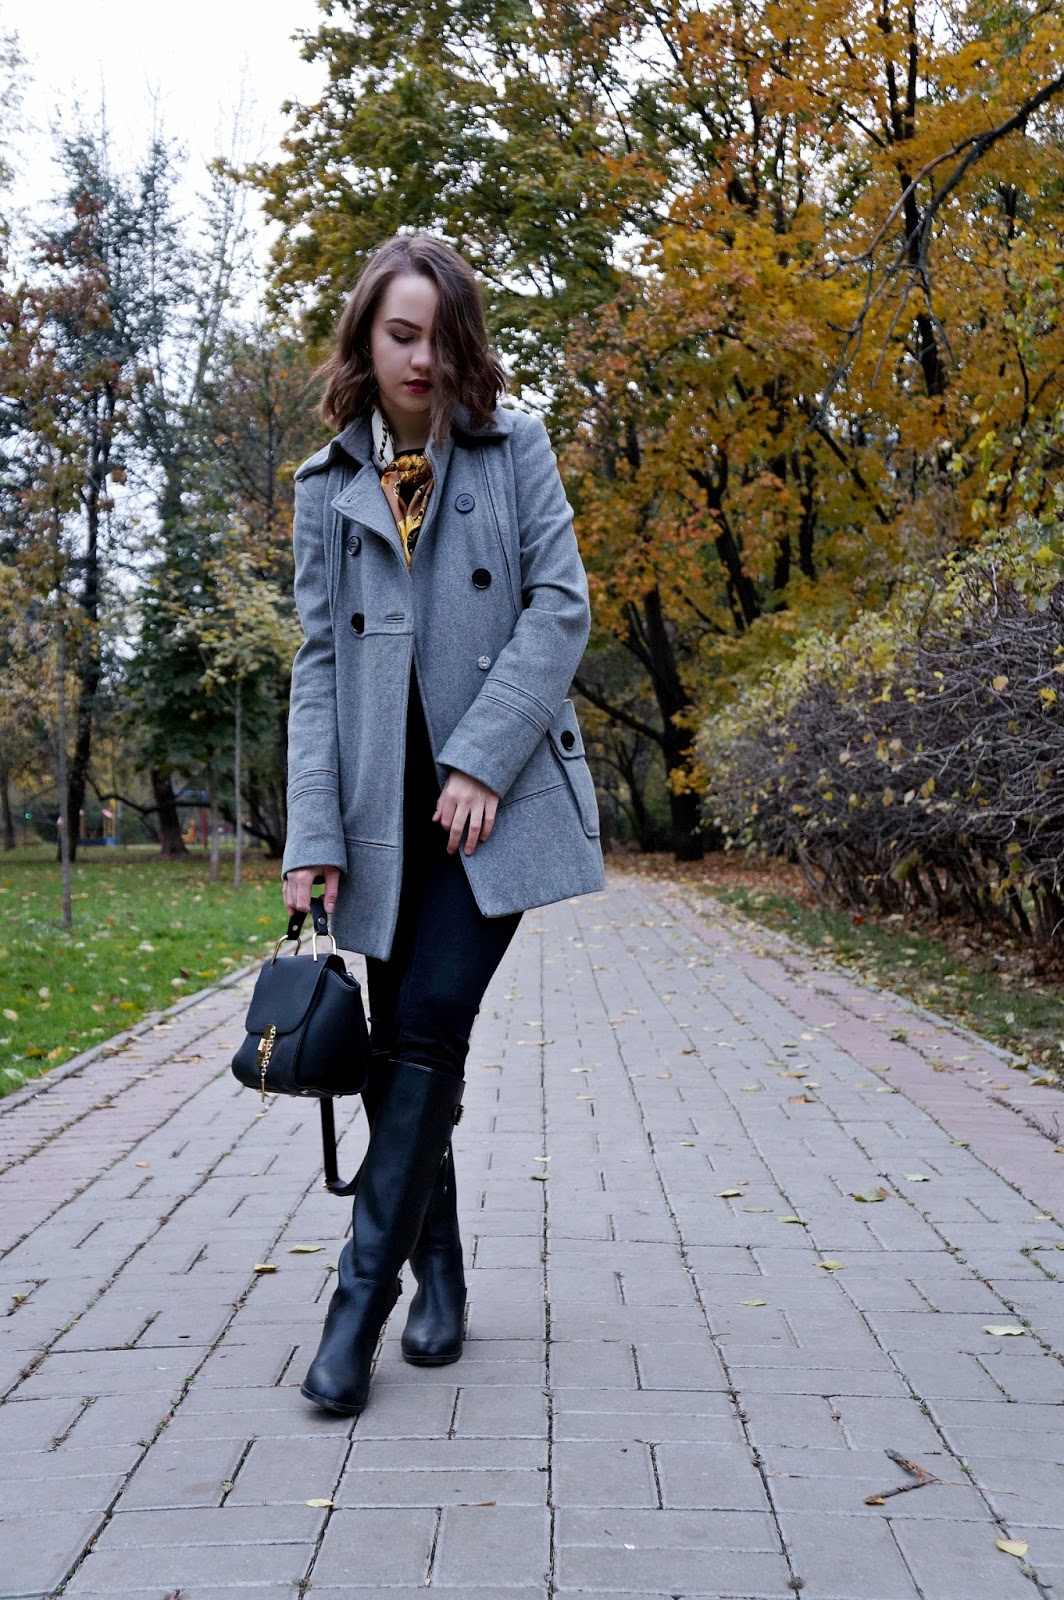 Grey coat | Fashion blogger | Alina Ermilova | Winter outfit